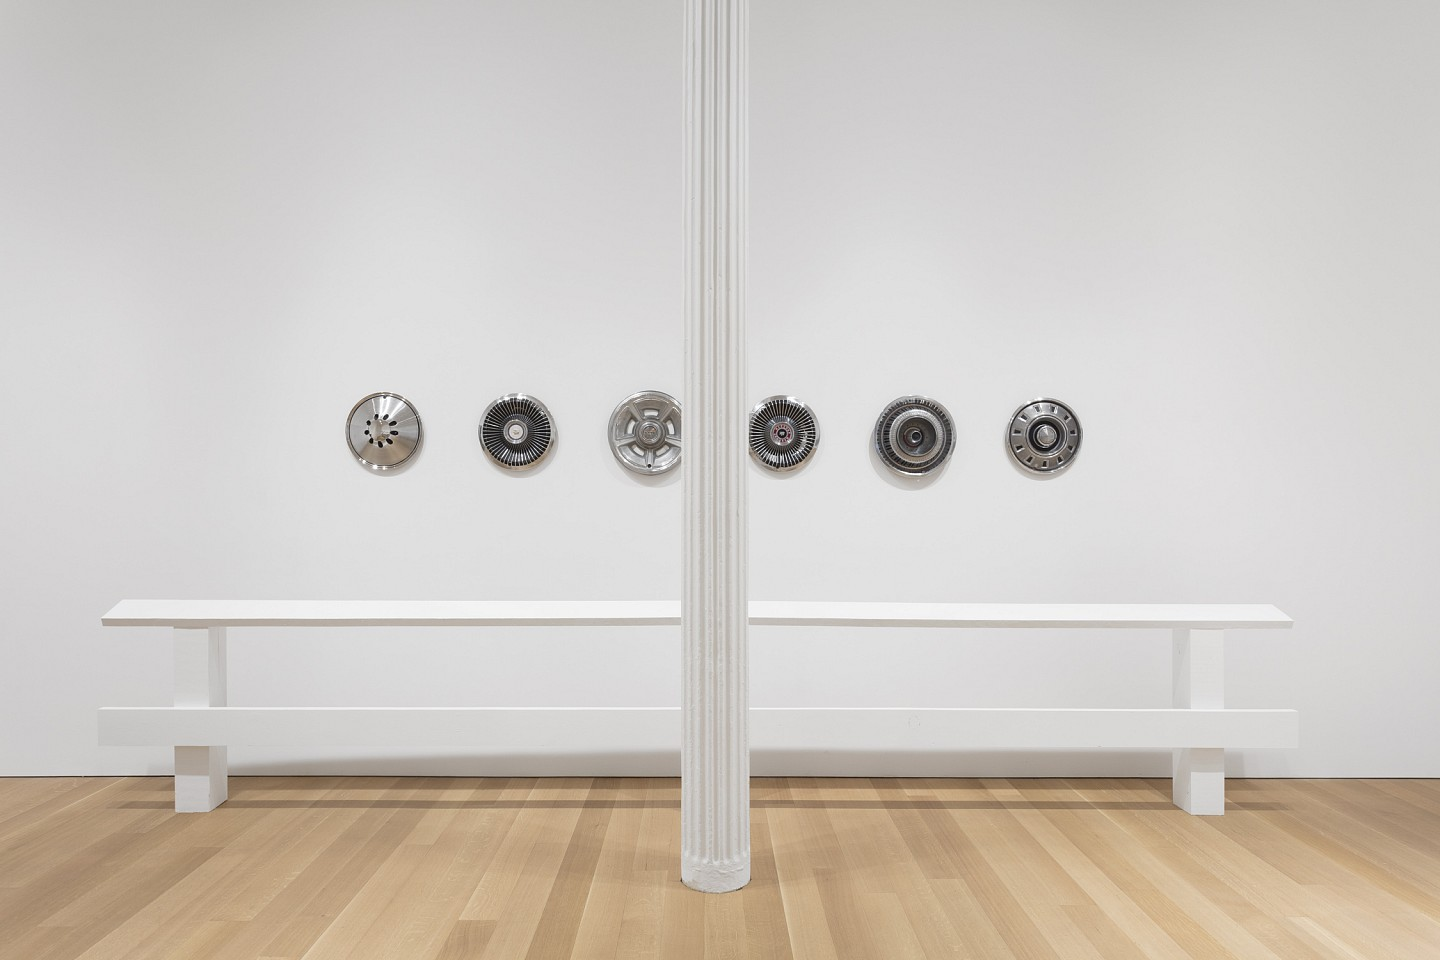 Rita McBride ,   Guide Rails with Hubcaps  ,  2017     wood, latex and 6 vintage hubcaps     installed dims: 70 3/8 x 193 x 20 in/178.7 x 490 x 50.8 cm     RMC-17-SC-434